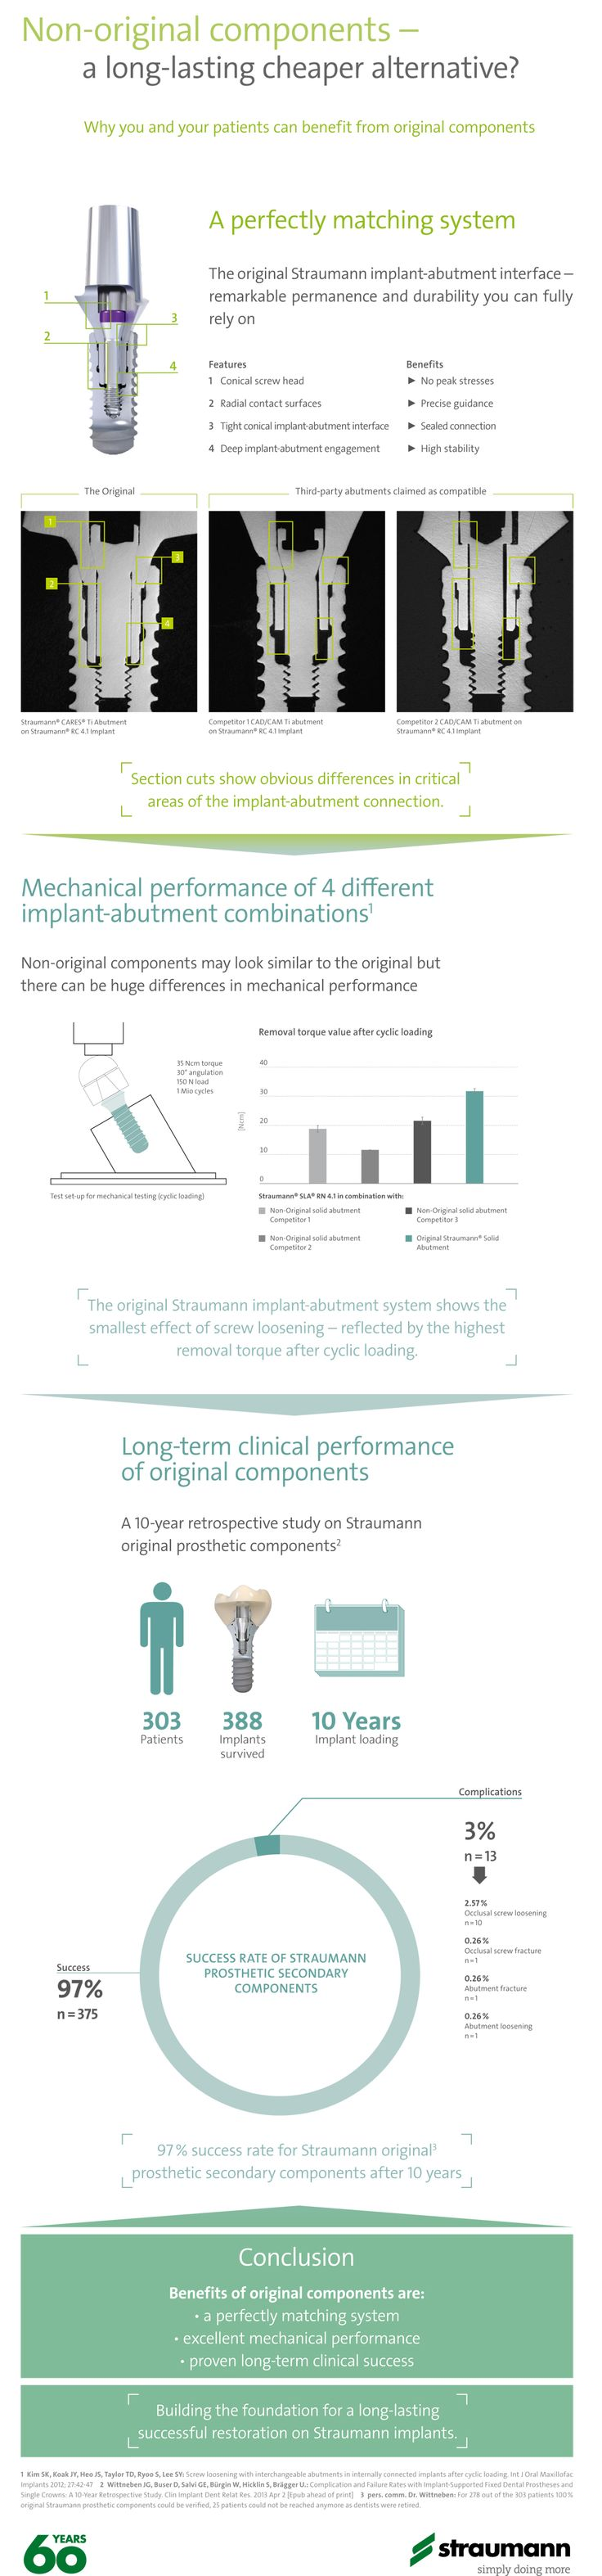 Infographic: Non-original components - a long-lasting cheaper alternative?  #straumann #dental #implants